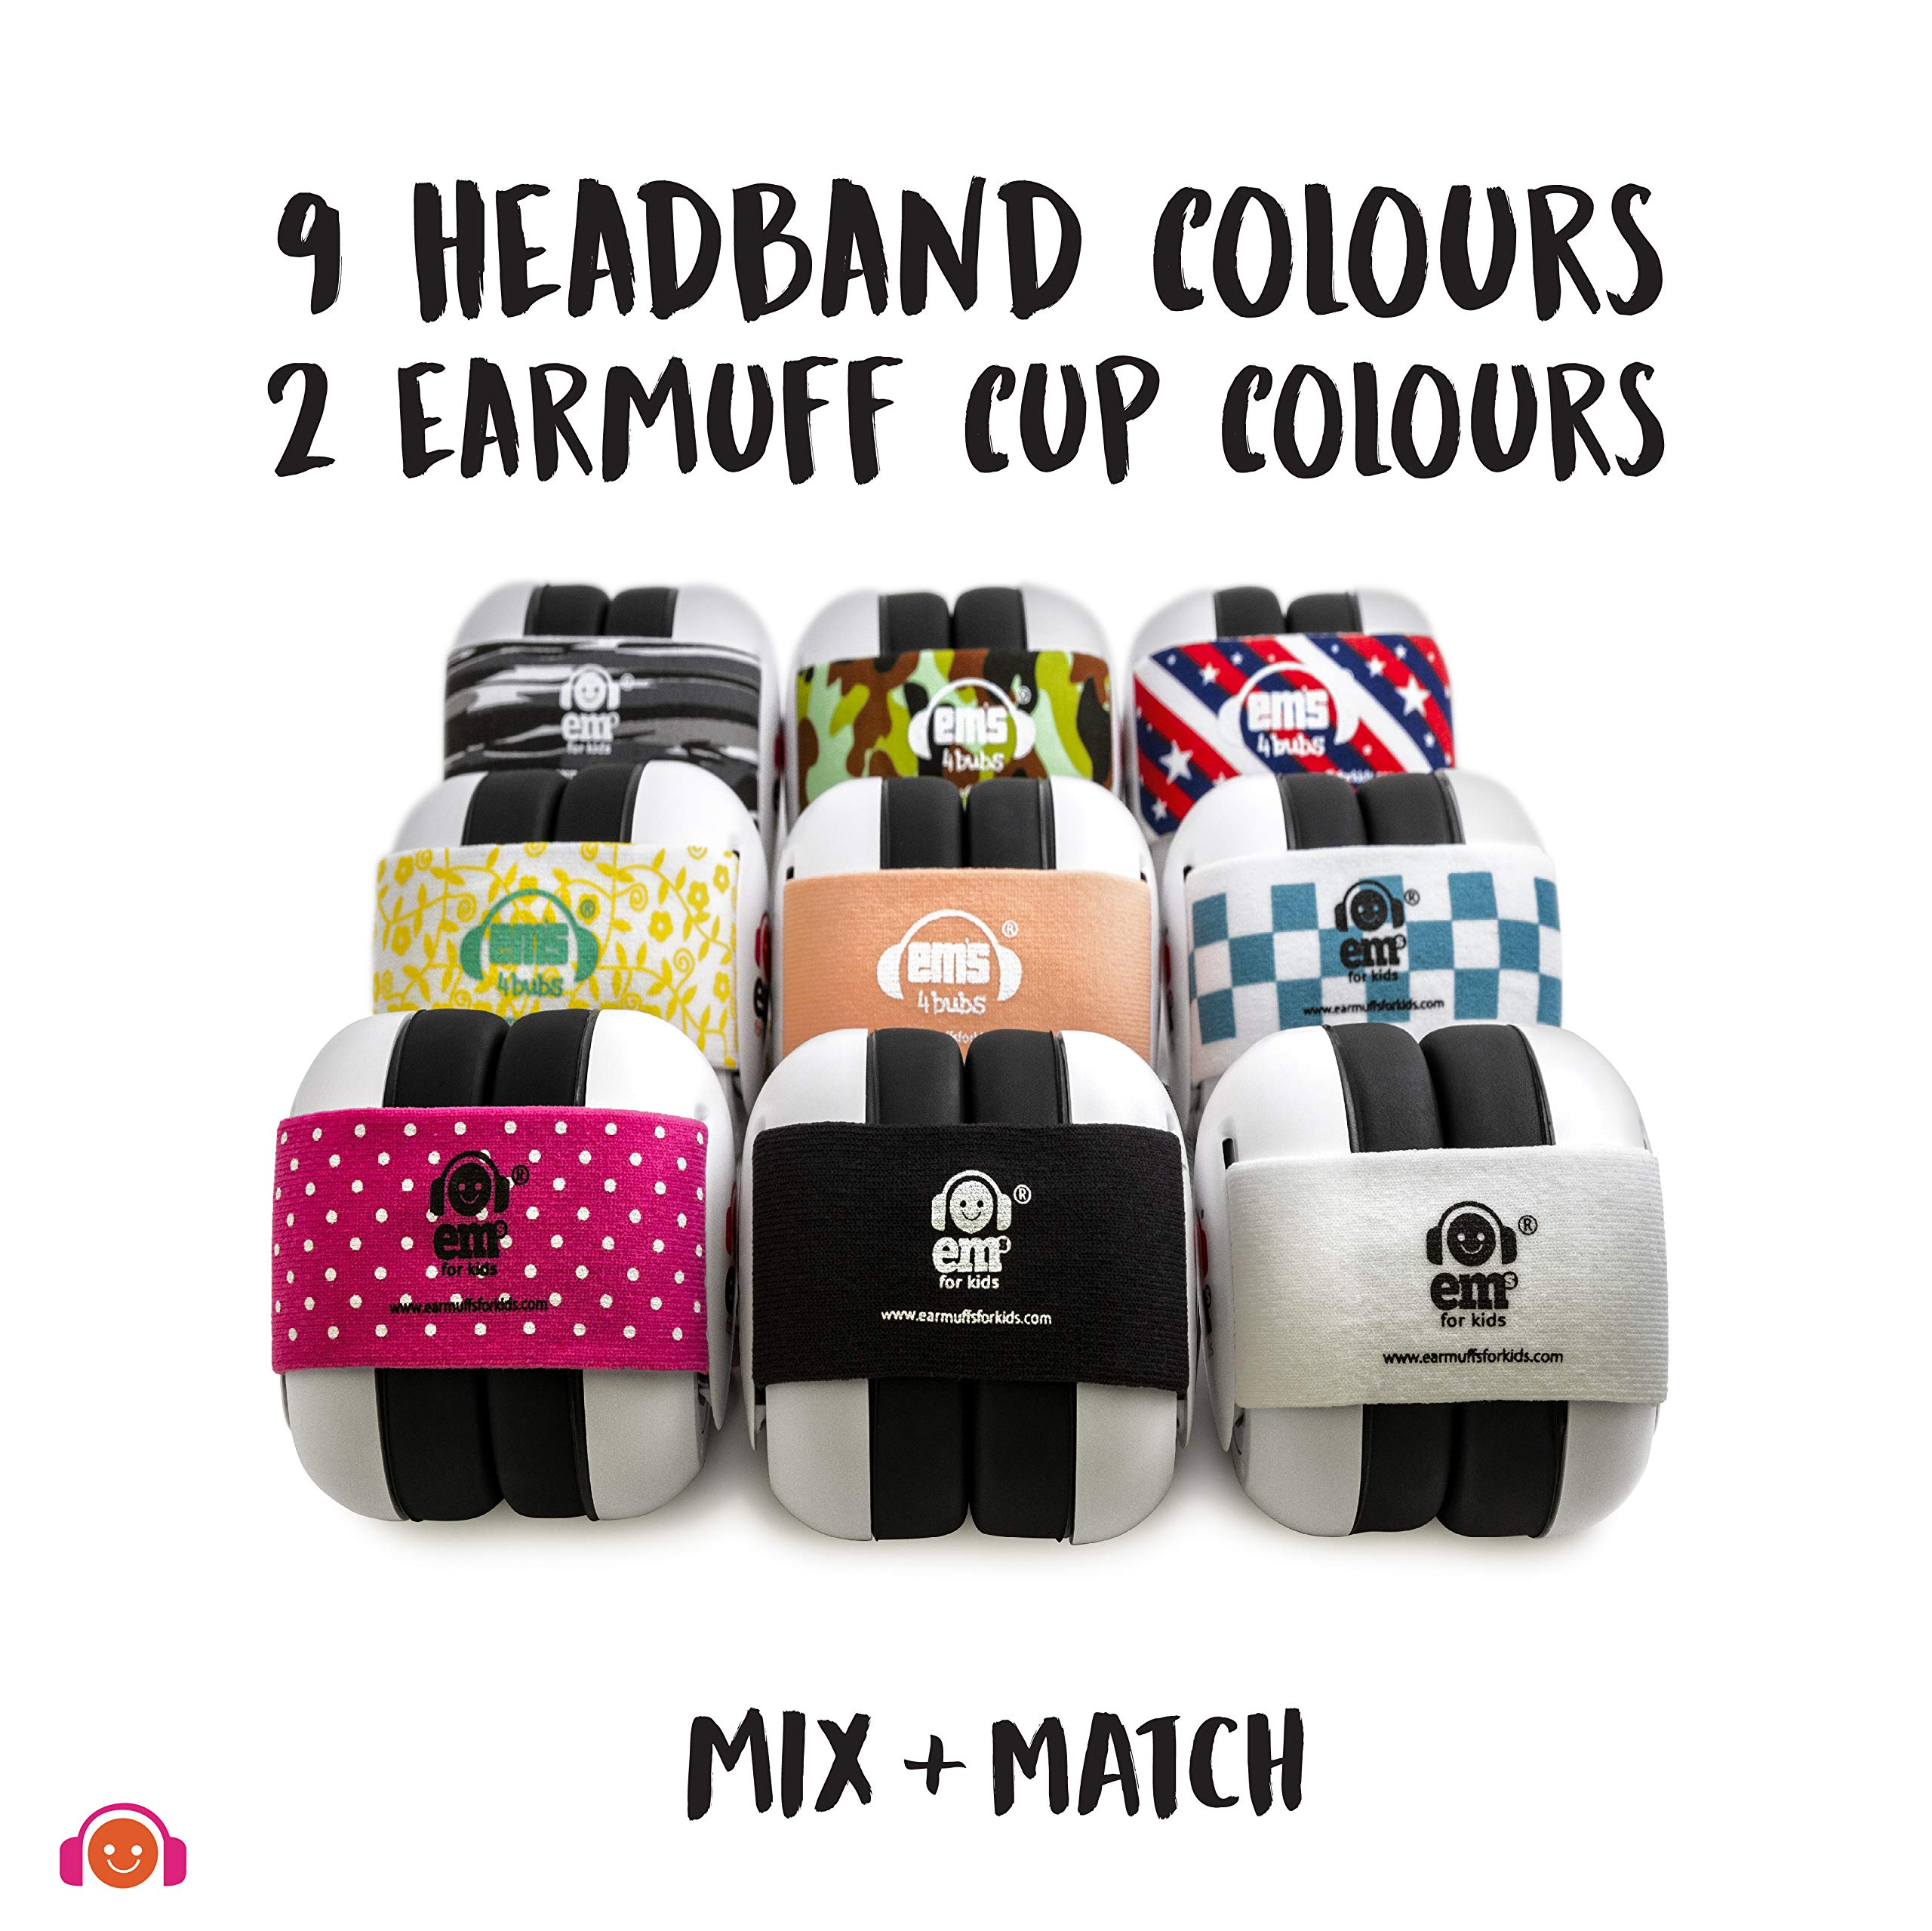 EMS for Kids Baby Earmuffs - White with Stars n Stripes. The Original Baby Earmuffs, Now Made in The USA. Great for Concerts, Music Festivals, Planes, NASCAR, Motor Racing, Power Tools and More! by Ems for Kids (Image #6)